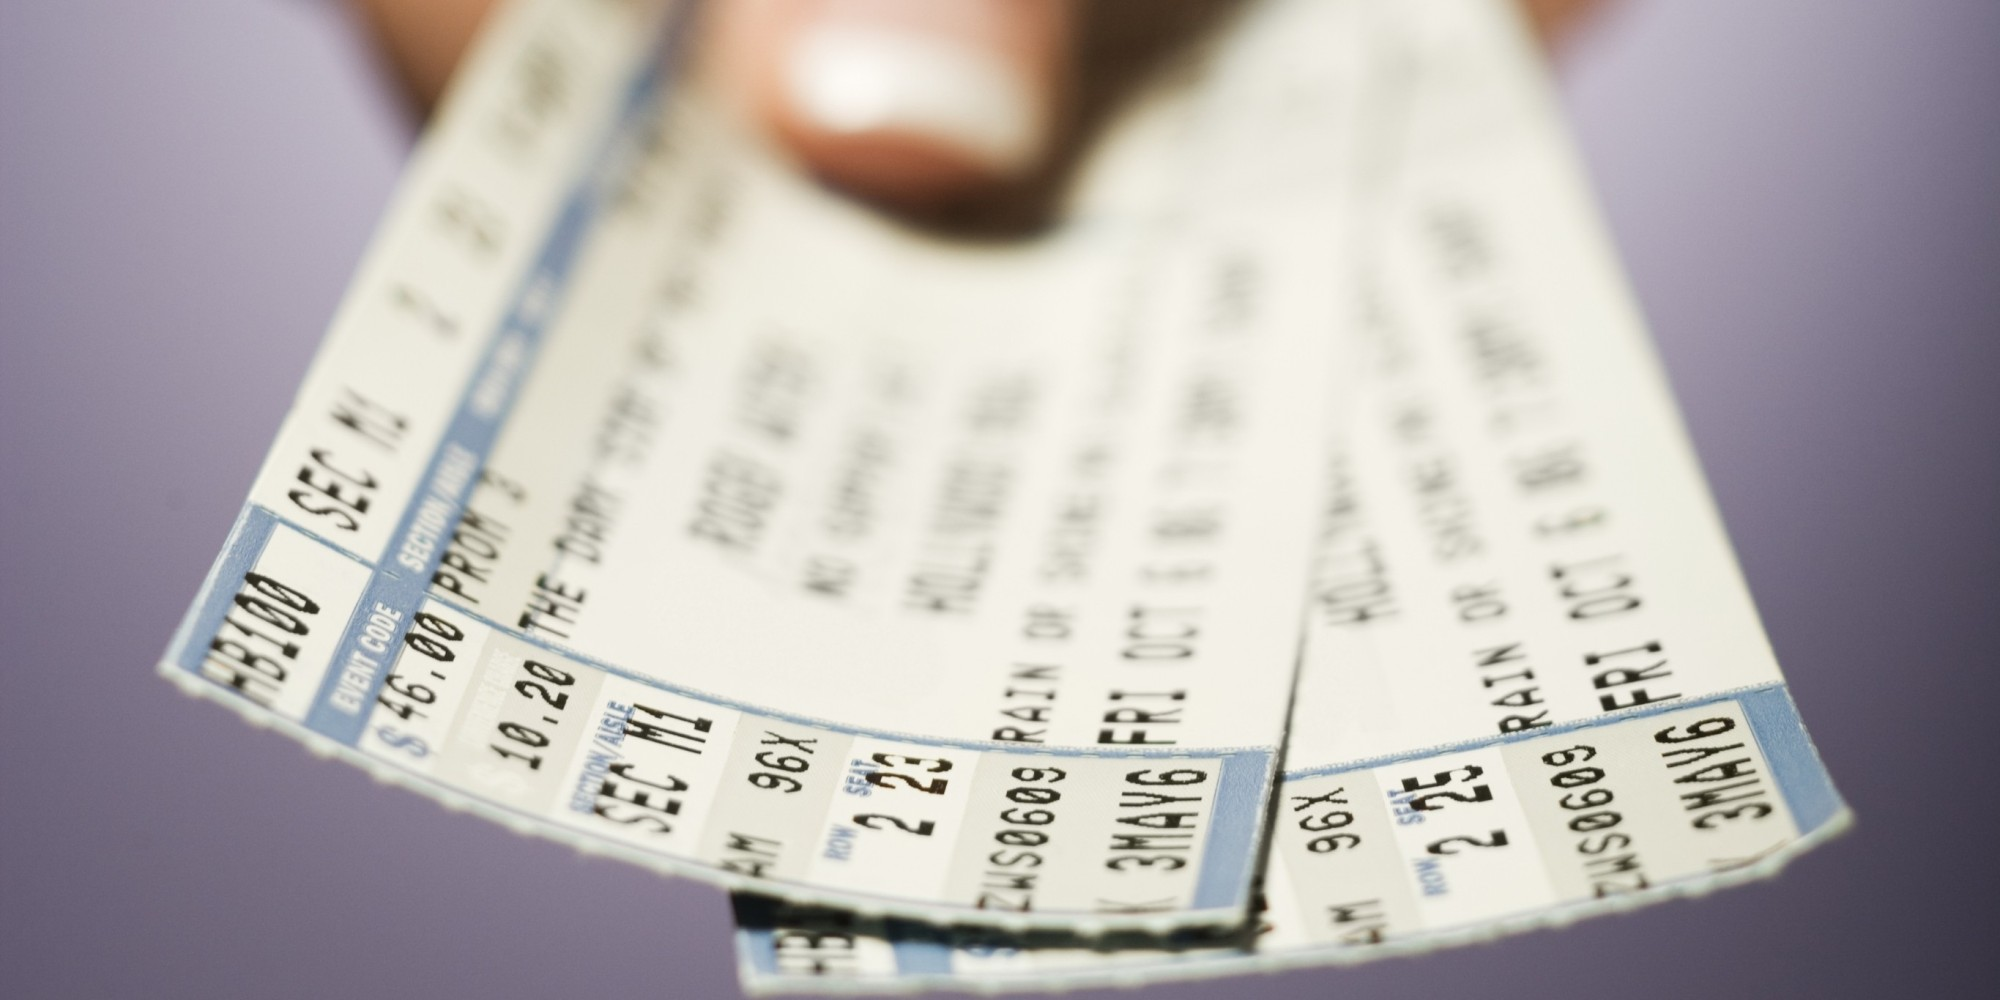 Ticket scams